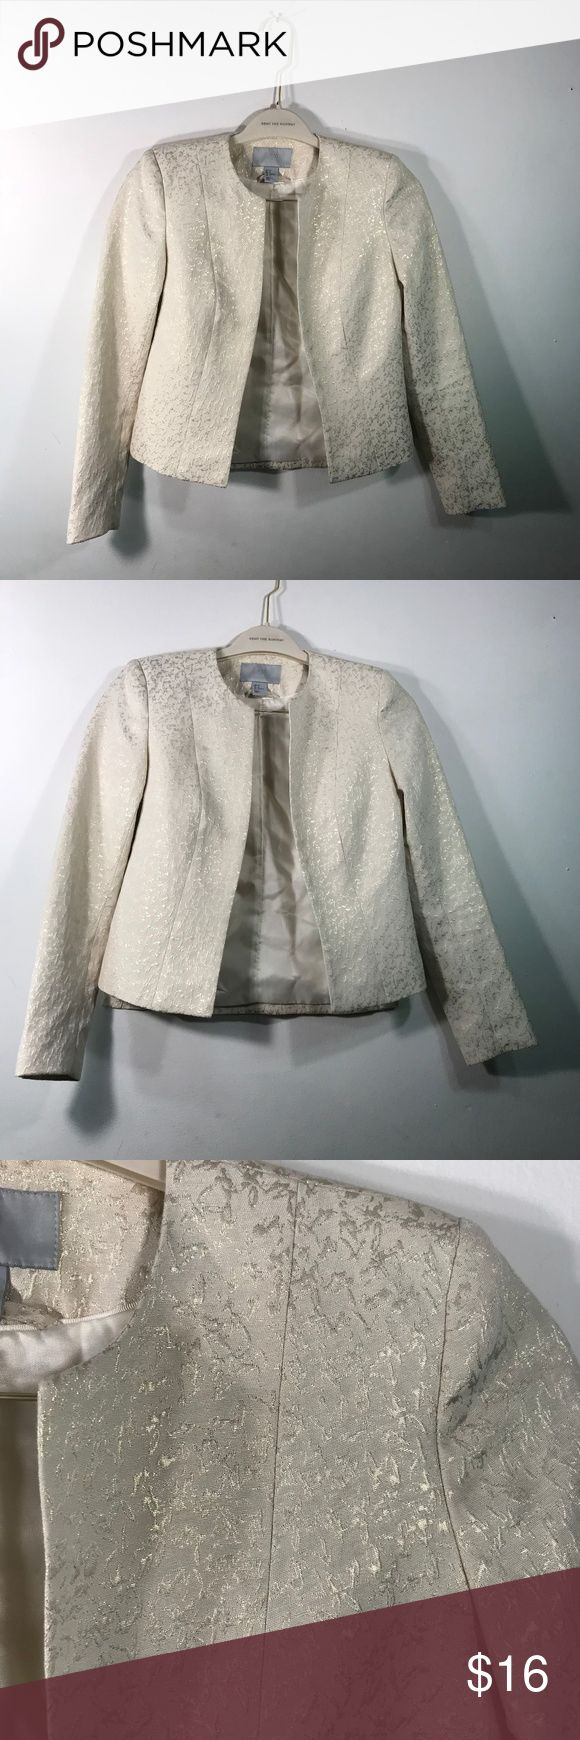 H&M Off White Egg Shell Work Blazer Gold Detail Perfect blazer for work or pairing with outfit for weekend during spring and summer Pairs well with dark denim jeans or skirt  Good condition- small stain as seen in picture 5  Egg shell or off white color with 3d gold design all over  Chest: 16 Sleeve: 22 Length: 20 H&M Jackets & Coats Blazers